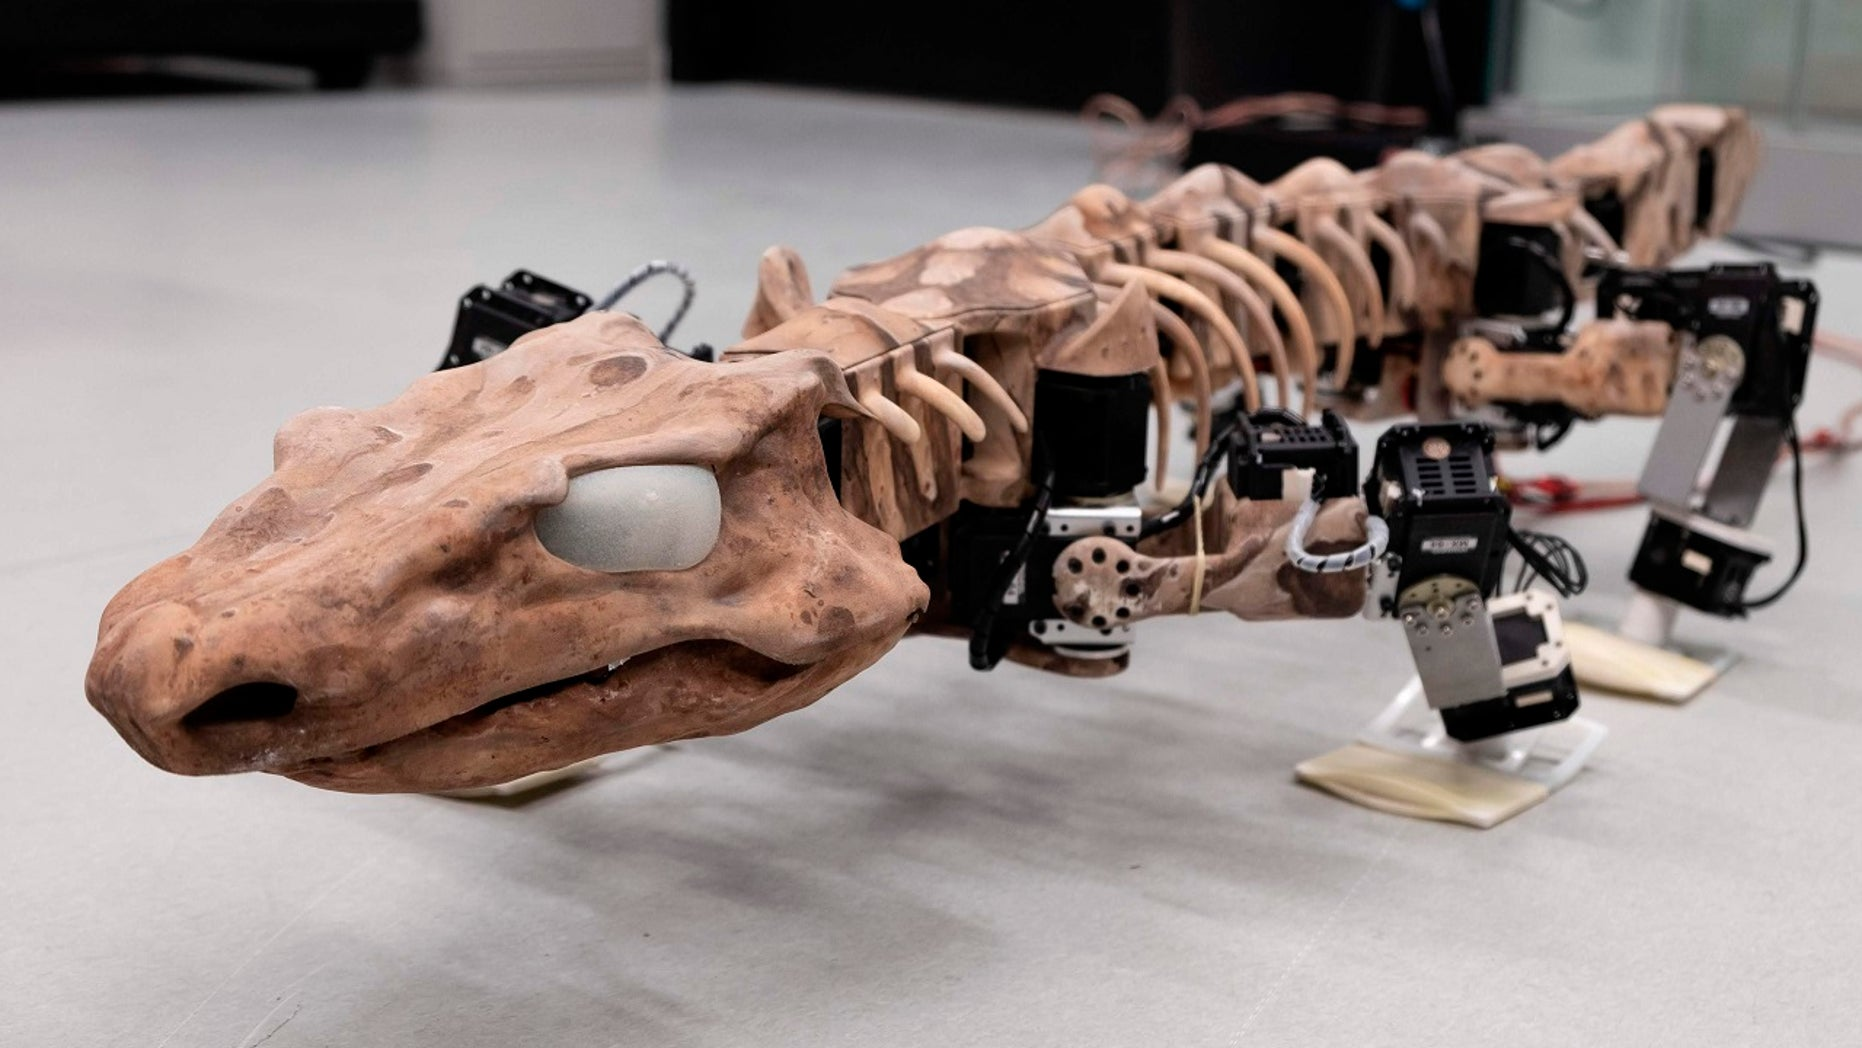 This undated photo provided by researchers in January 2019 shows the OroBOT, based on an Orobates Pabsti fossil. Scientists have used a nearly 300-million-year old skeleton and preserved ancient footprints to create the moving robot model of prehistoric life.